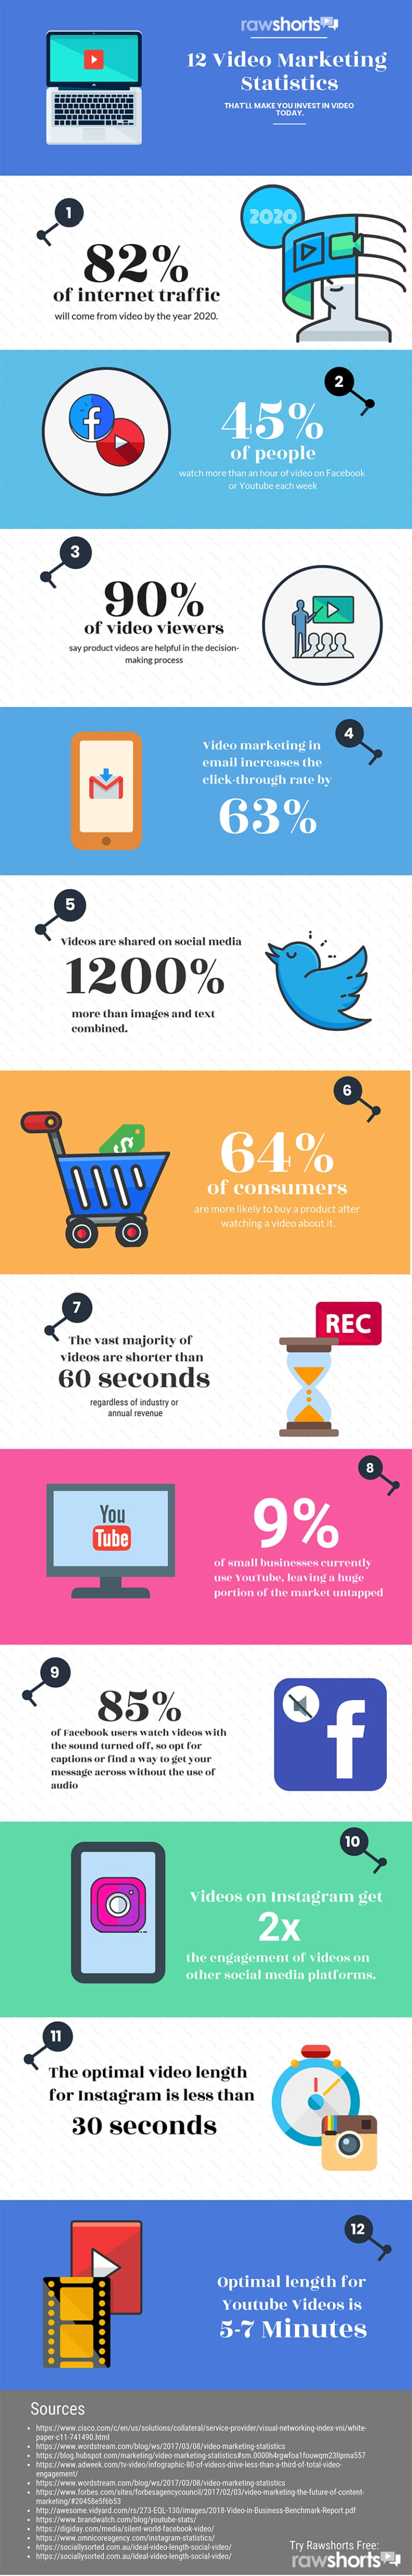 Infographic outlines a range of key video consumption stats